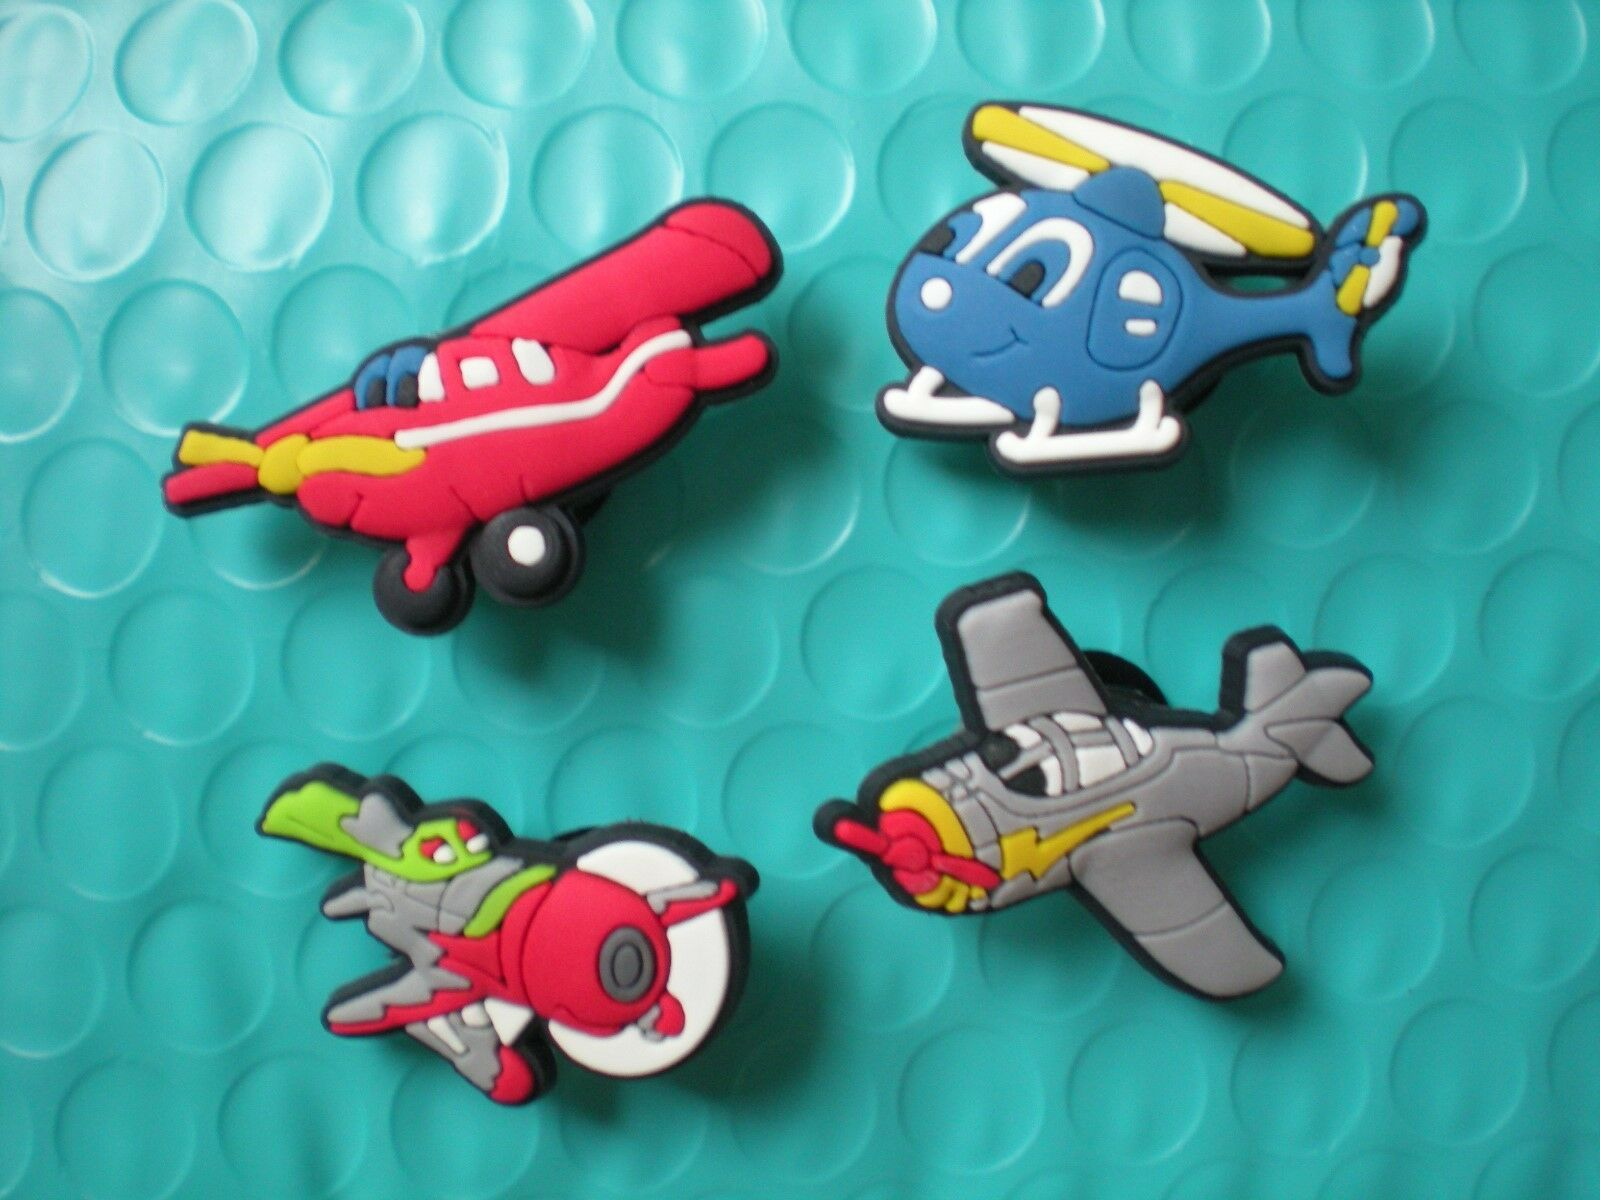 4 Planes Shoe Charm Fit Kid Clog Belt WristBand Accessories W//Hole Lace adapter